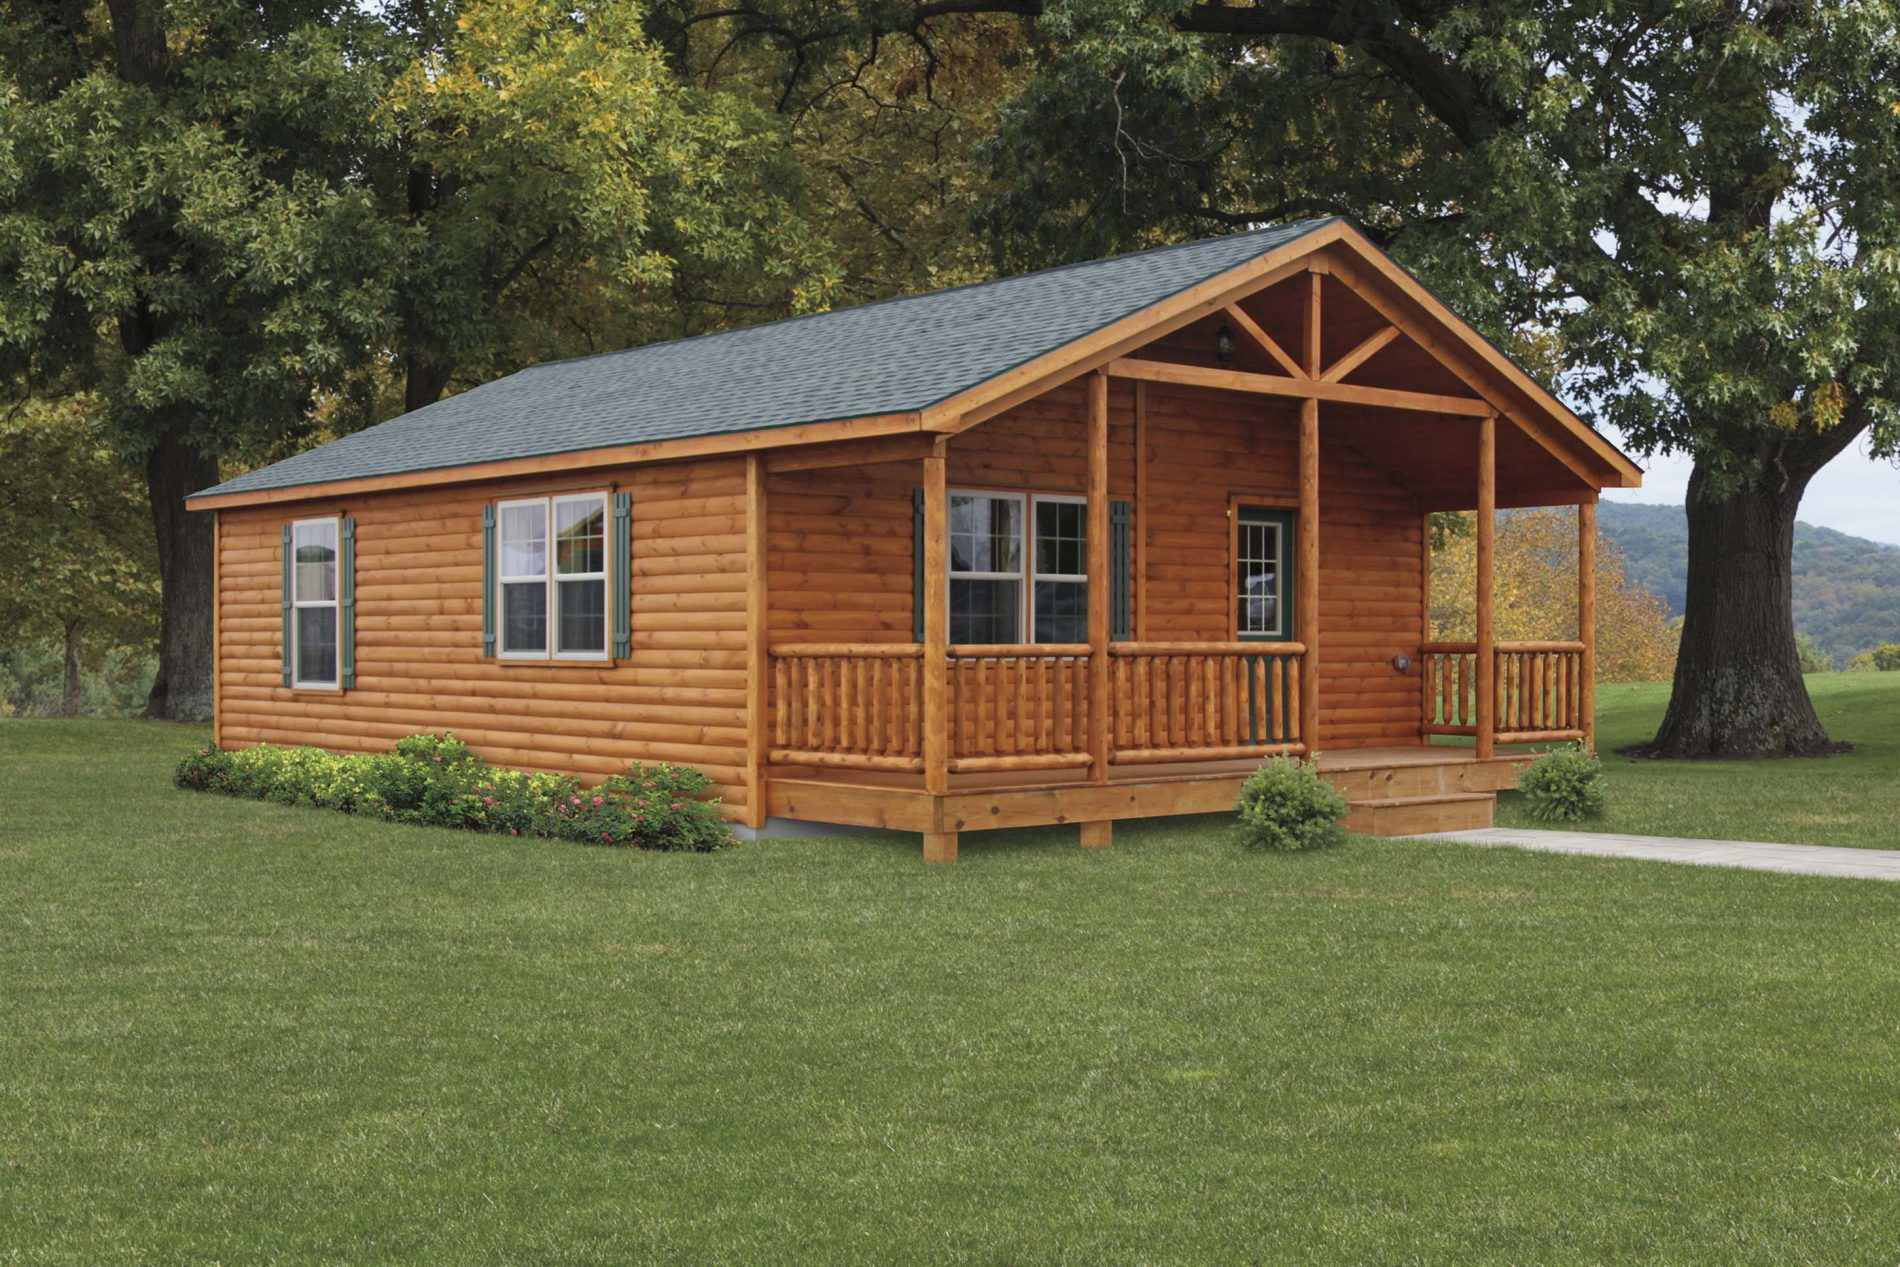 modular log cabins prefab log cabins zook cabins rh zookcabins com modular cottages for sale in ny modular cottages for sale in ny